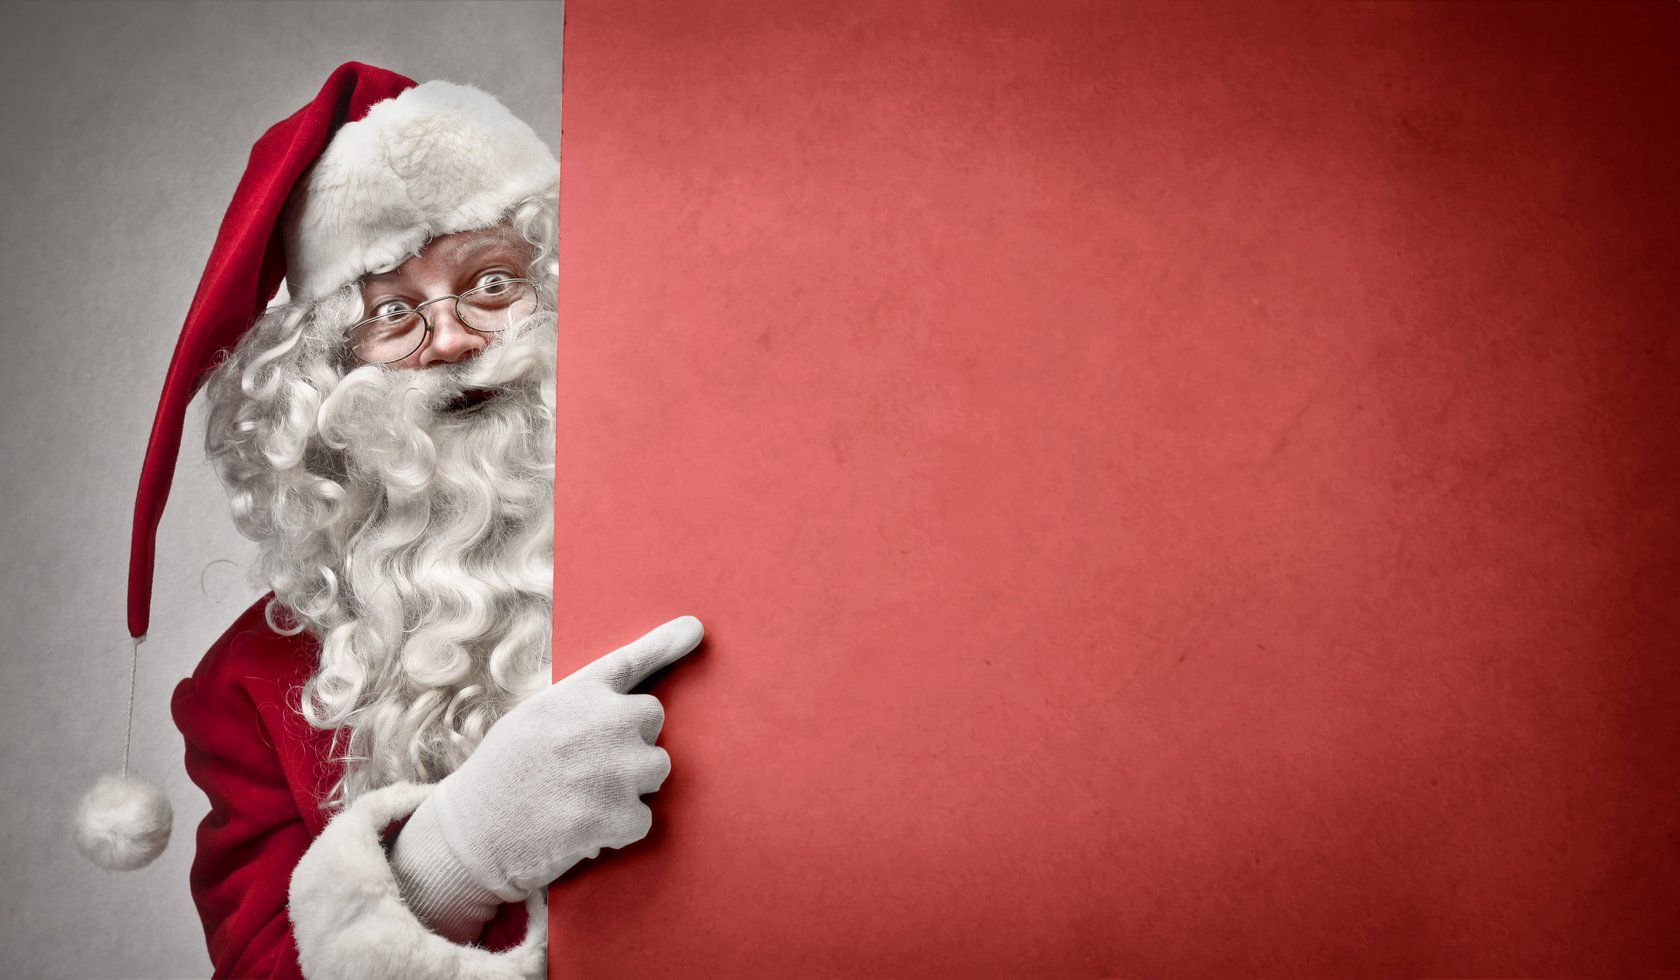 Christmas Background Images Portrait.3 Basic Methods For Christmas Background Photography With